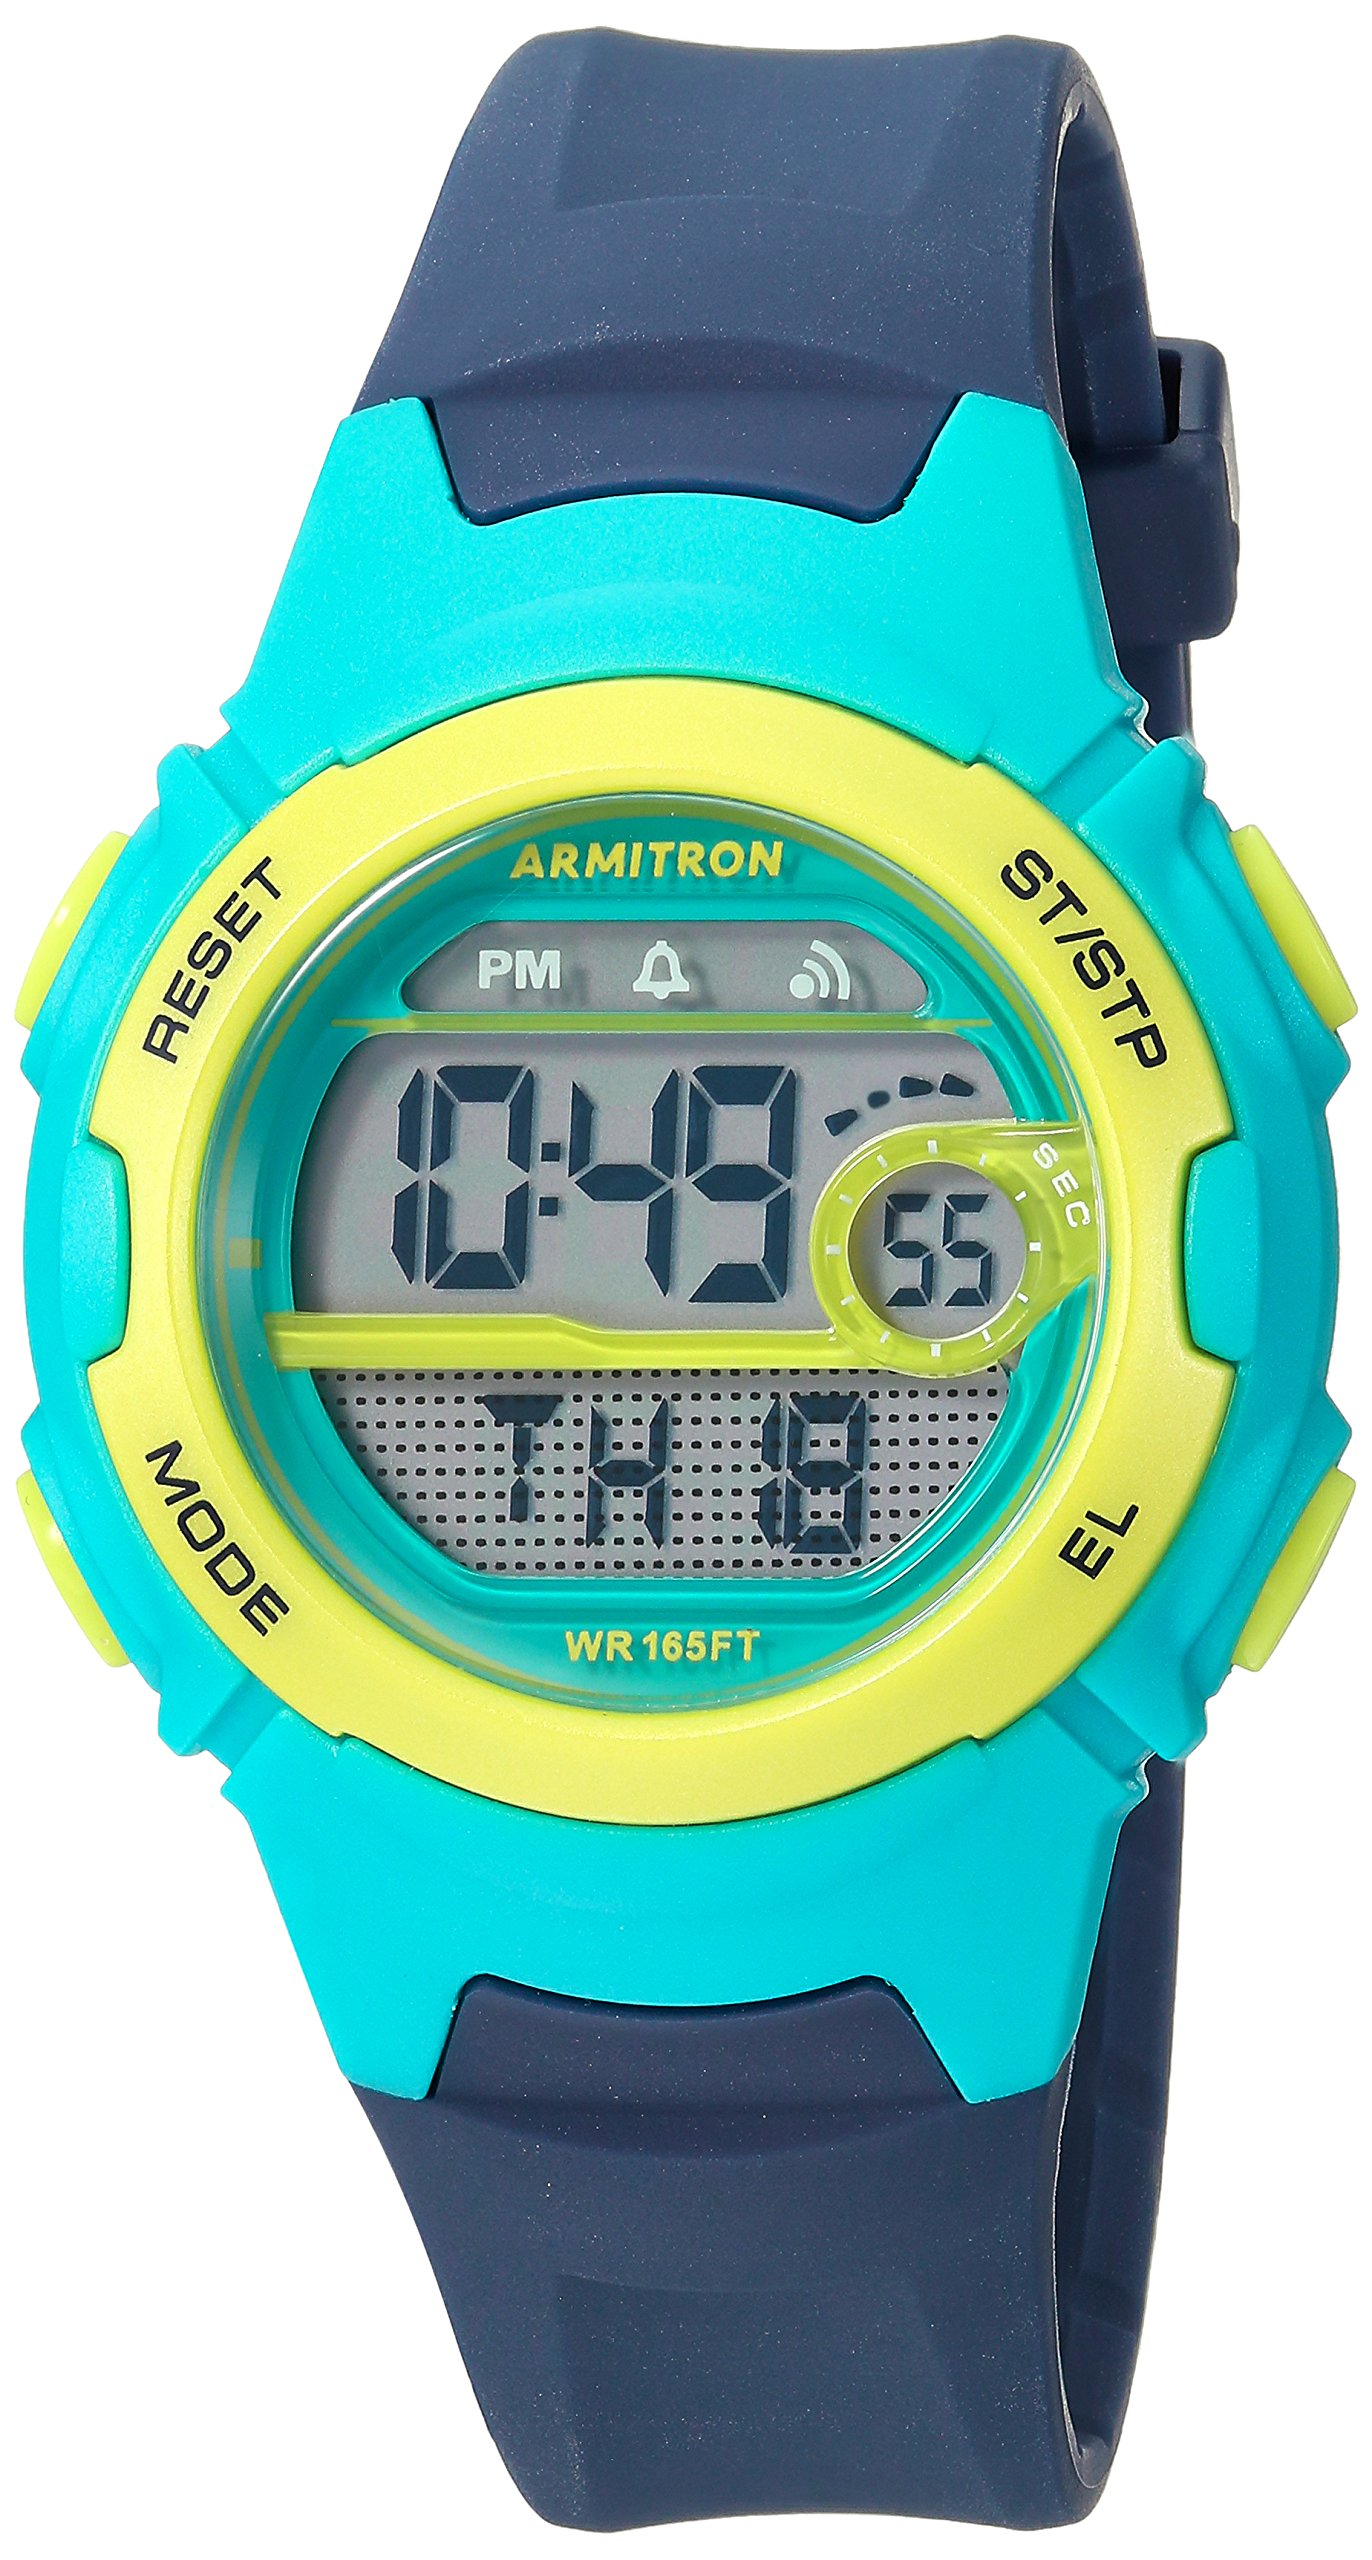 Armitron Sport Women's 45/7088NVY Teal and Lime Green Accented Digital Chronograph Navy Blue Resin Strap Watch by Armitron Sport